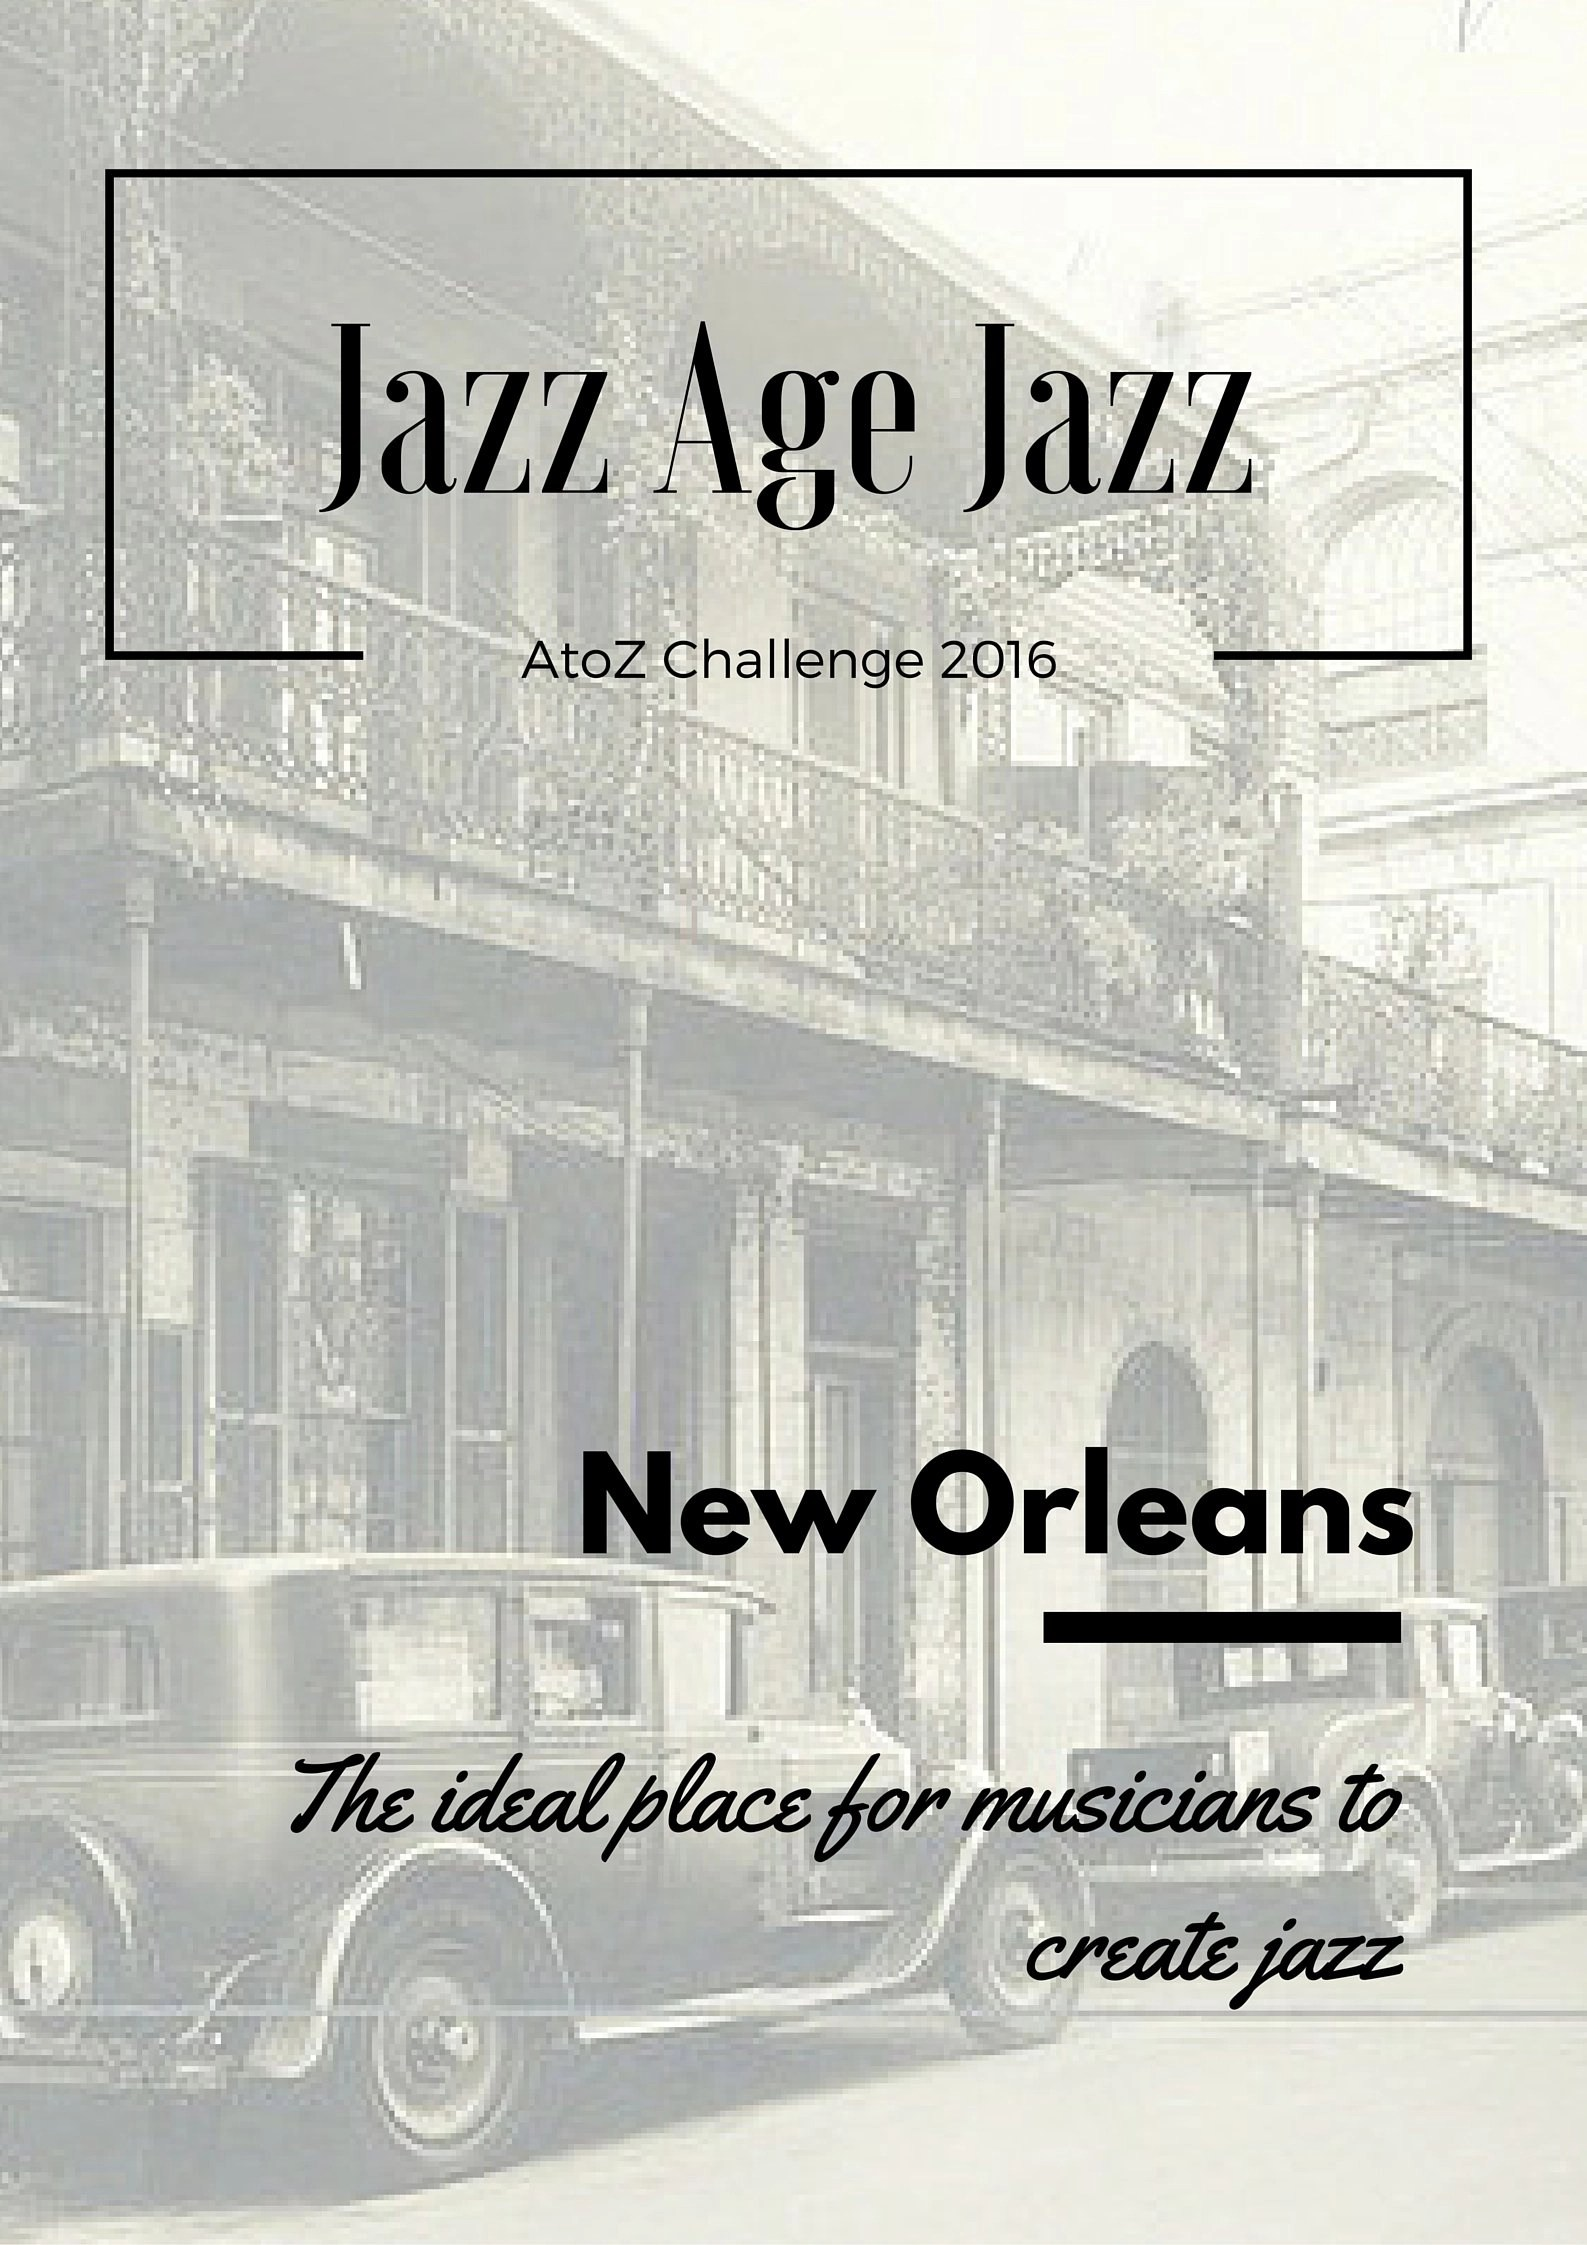 Jazz Age Jazz - New Orleans: the ideal place for musicians to create jazz